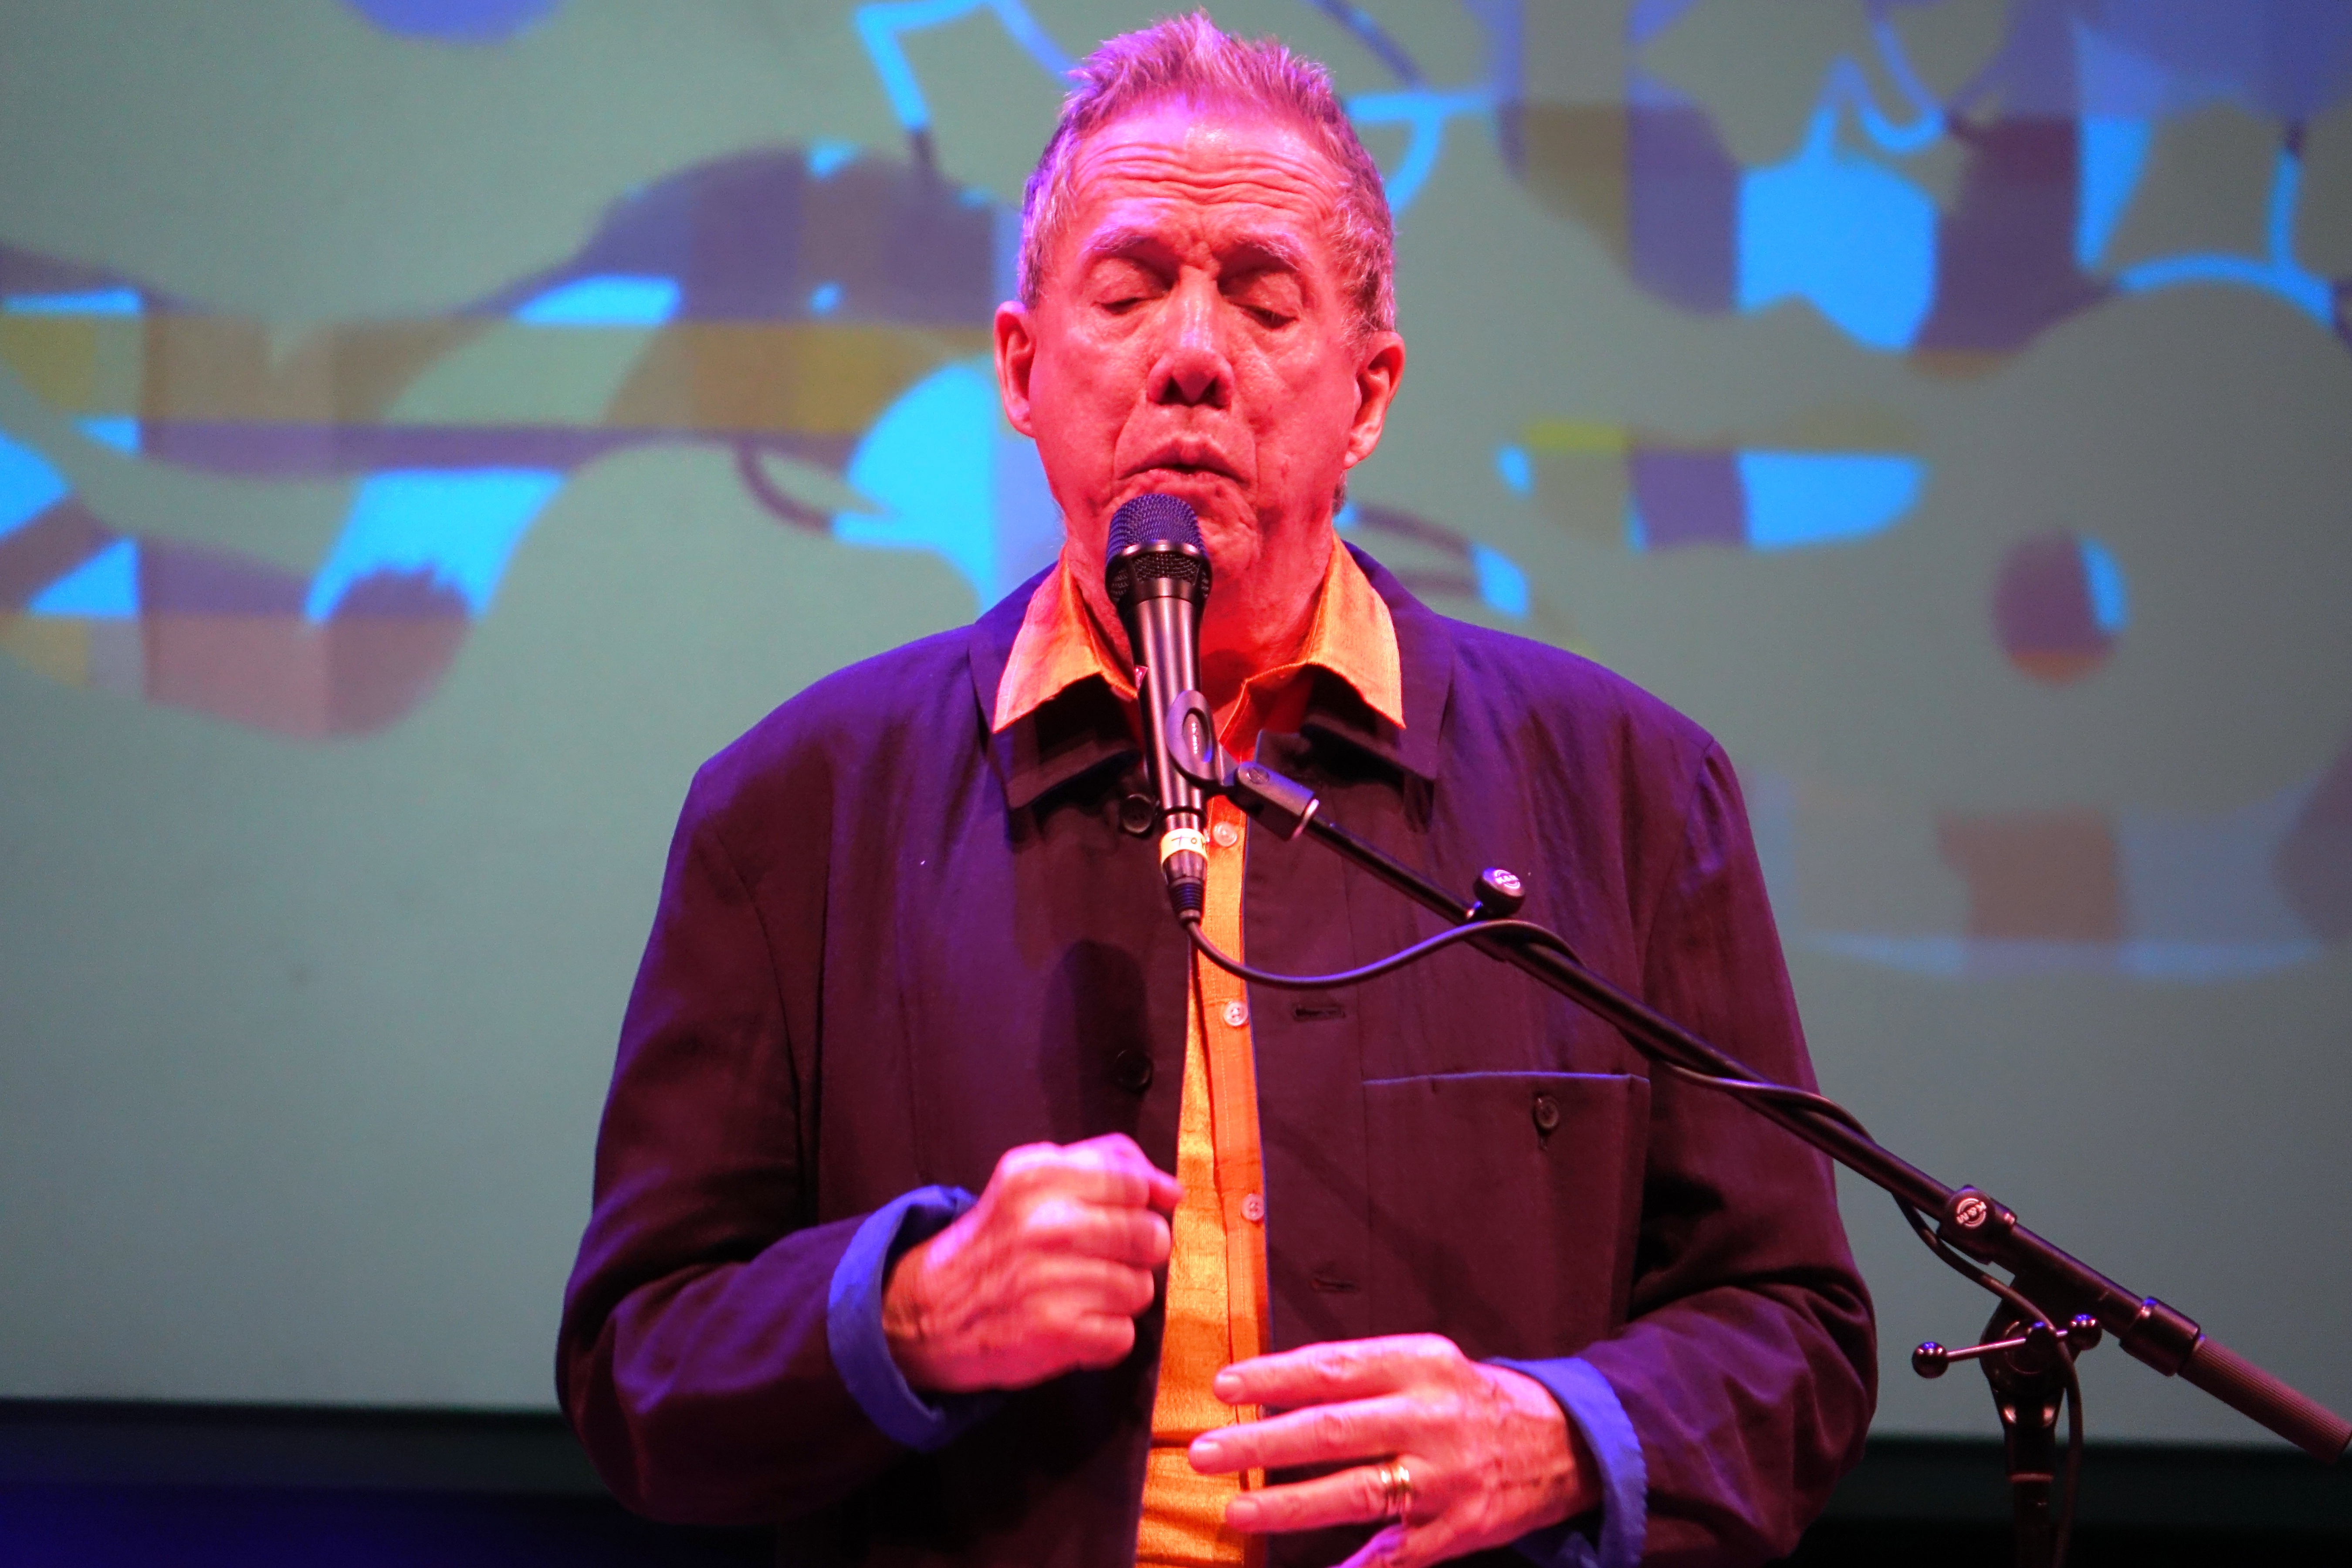 Thomas Buckner at Roulette, Brooklyn in May 2018